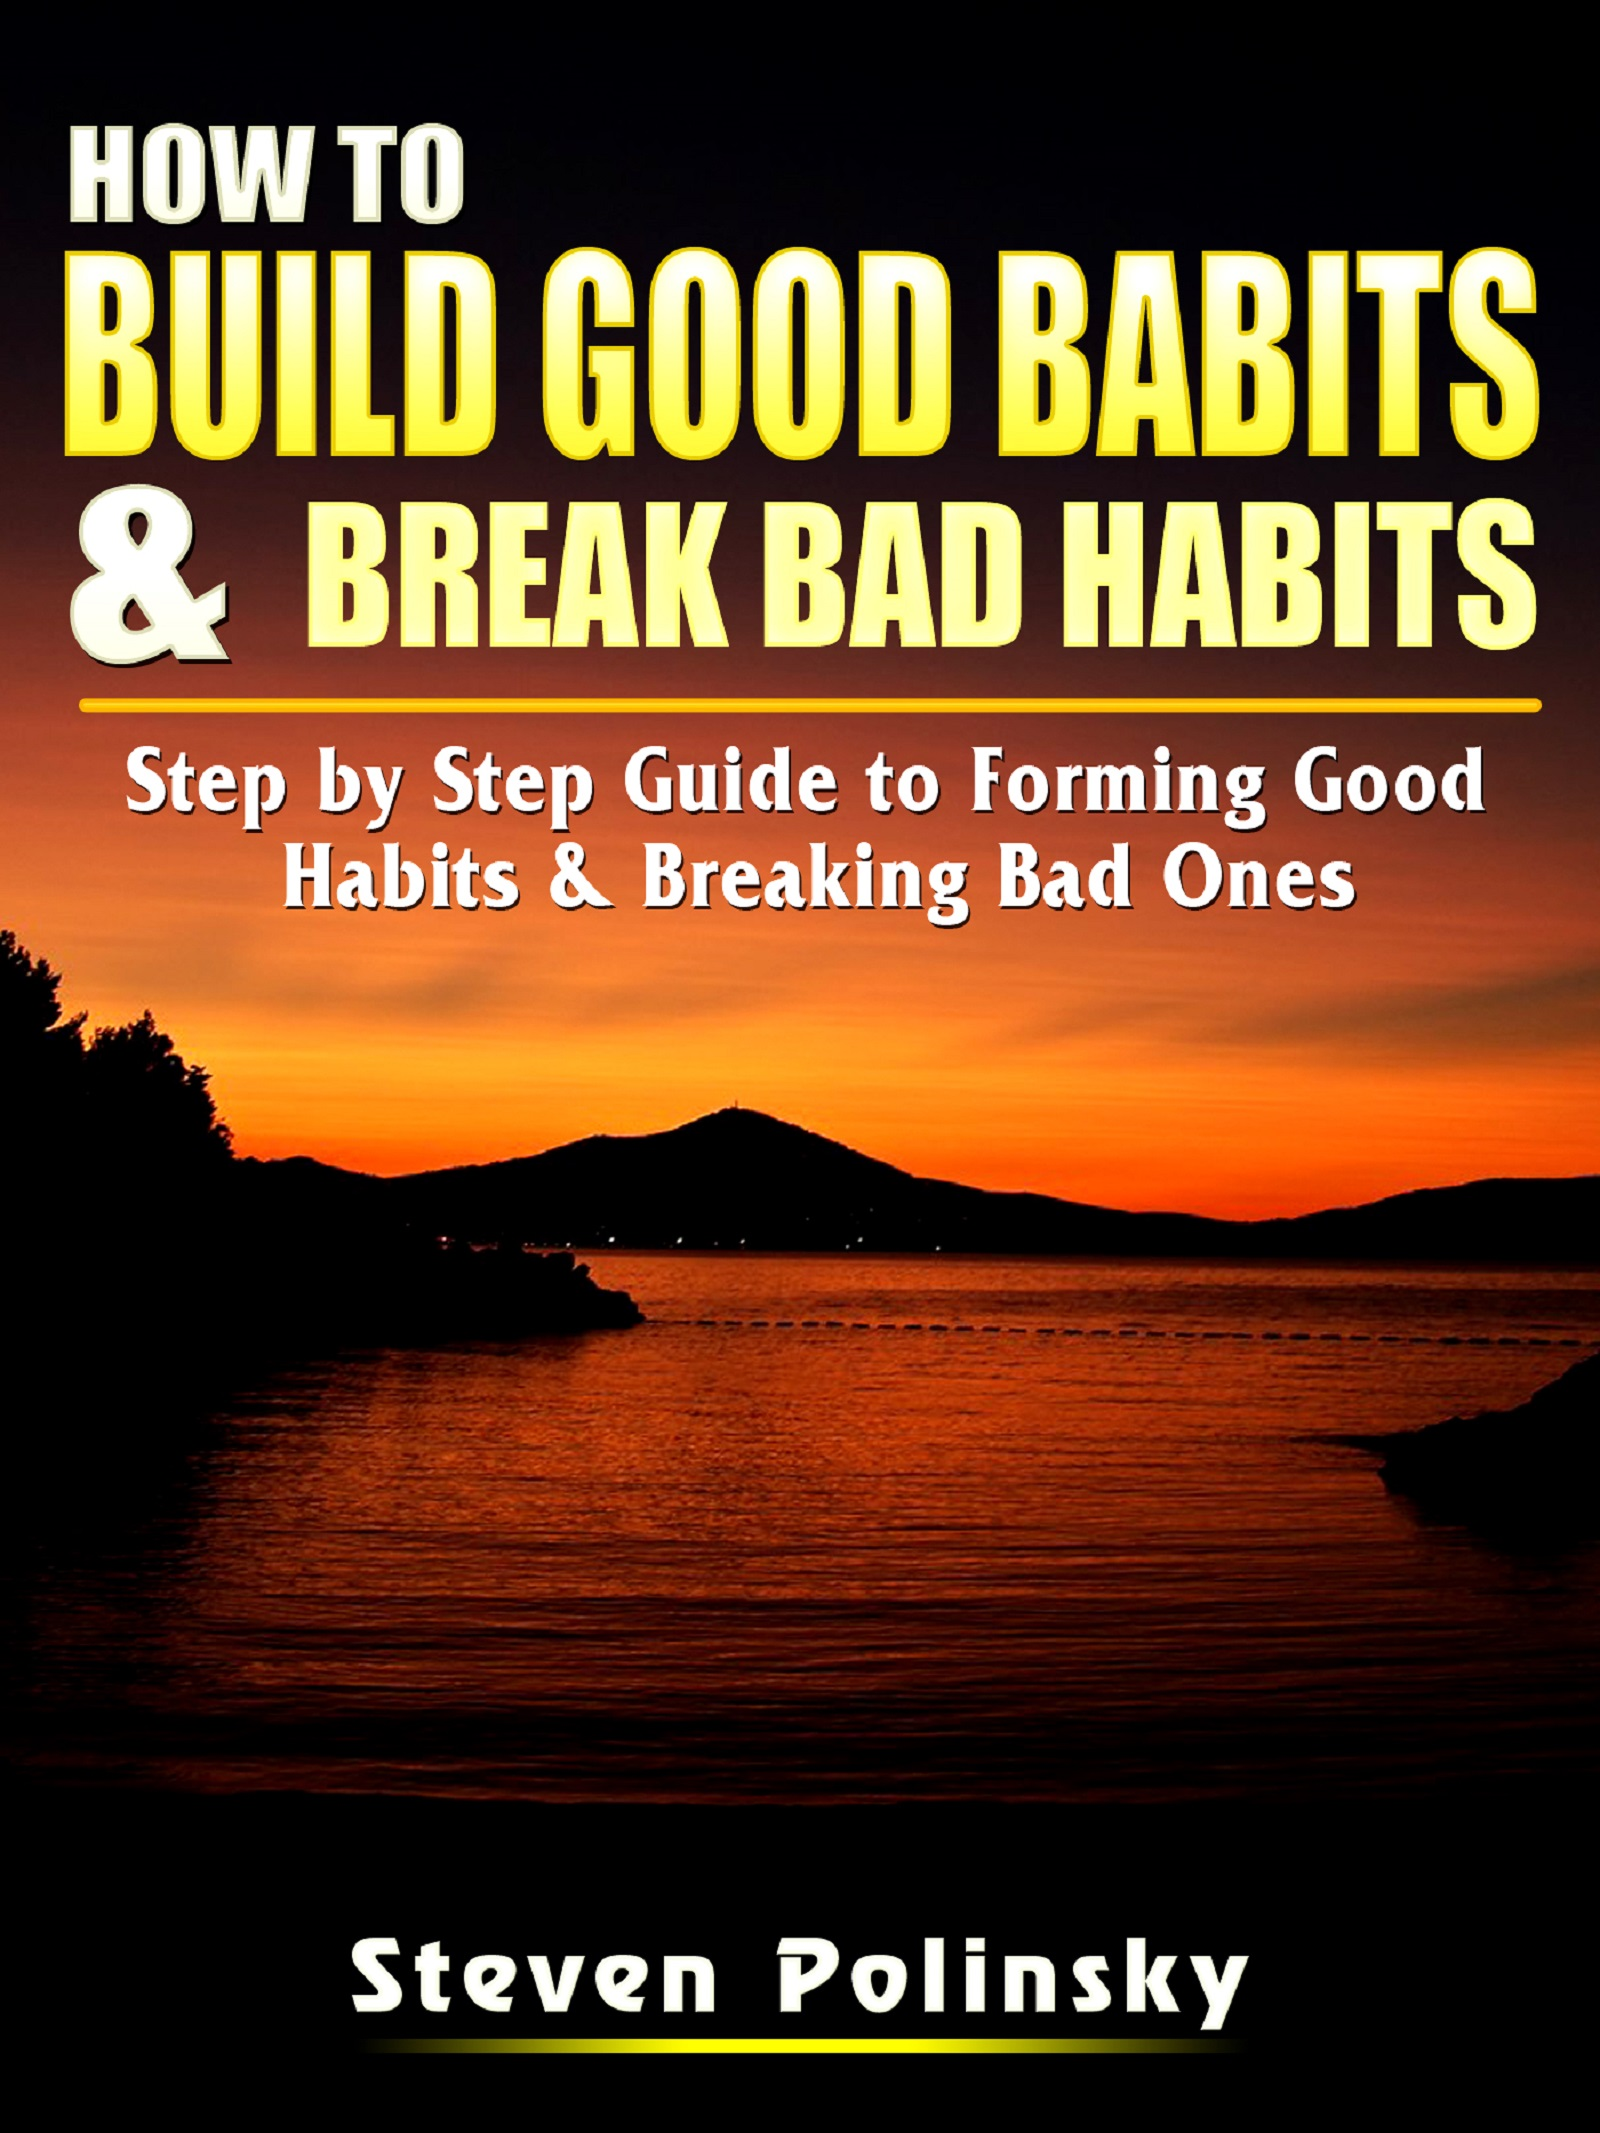 How to build good habits & break bad habits: step by step guide to forming good habits